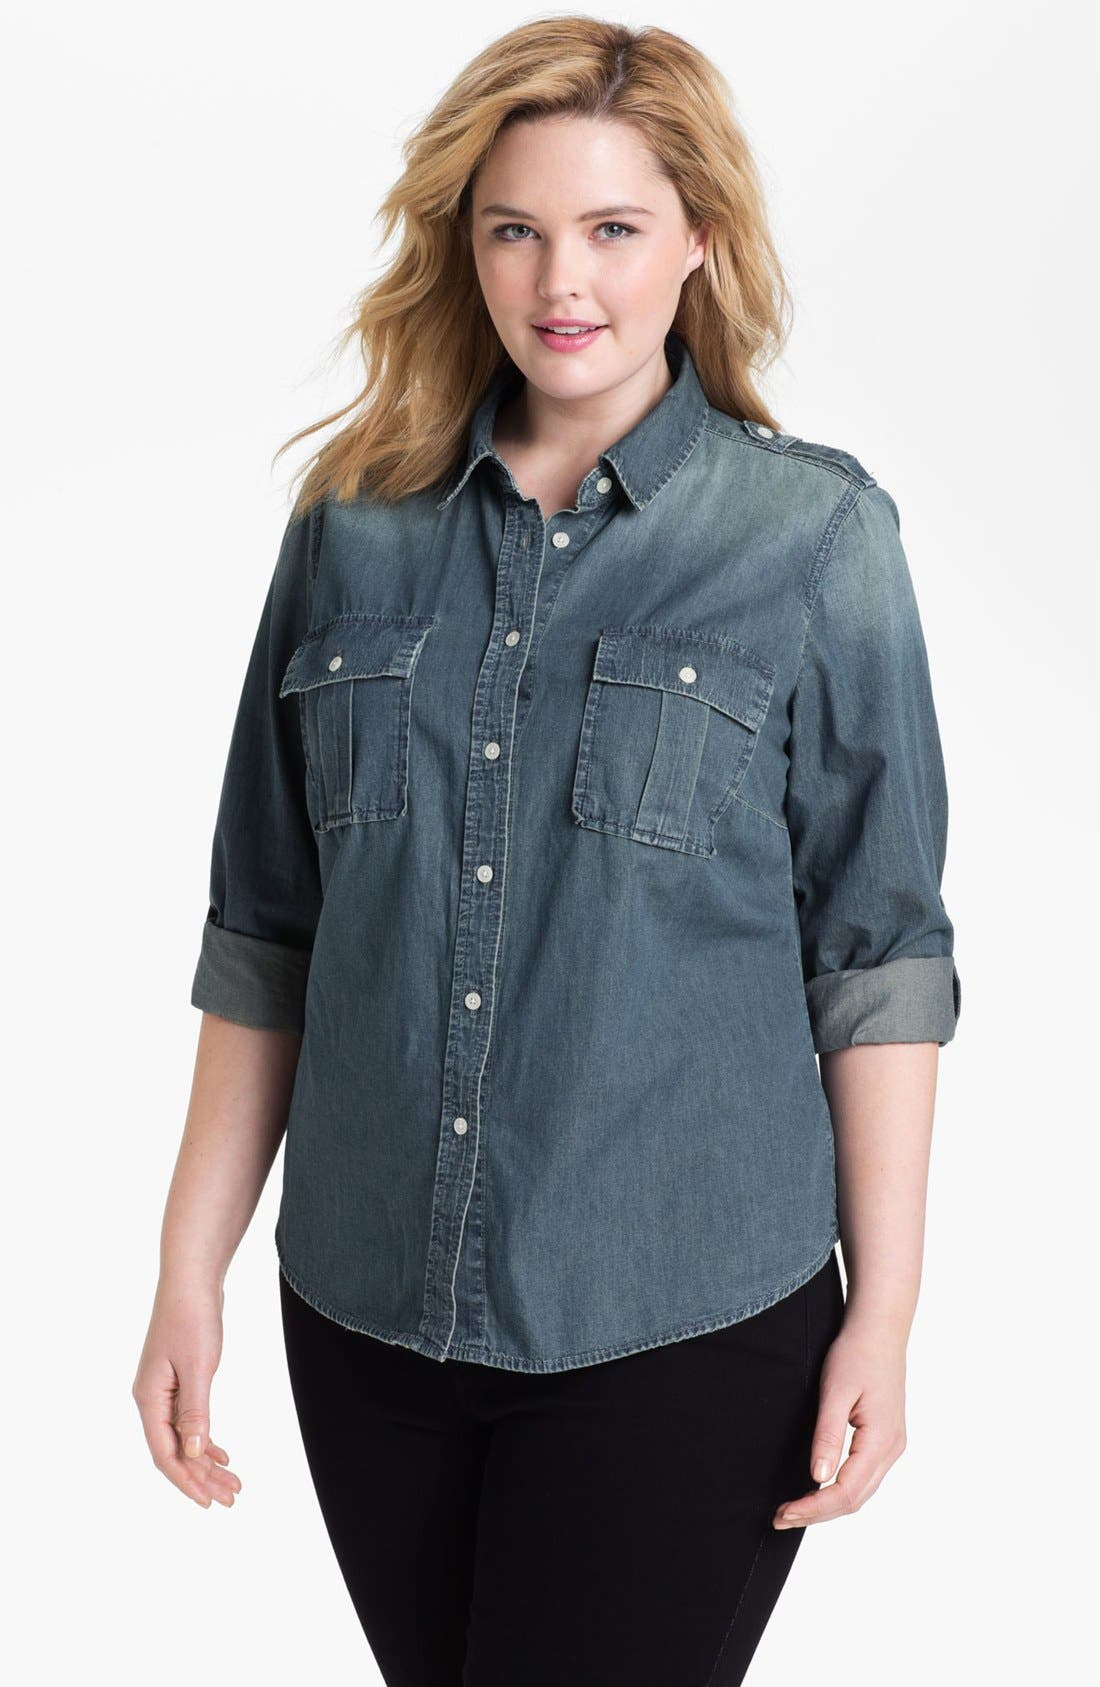 Alternate Image 1 Selected - MICHAEL Michael Kors Military Denim Shirt (Plus) (Online Only)